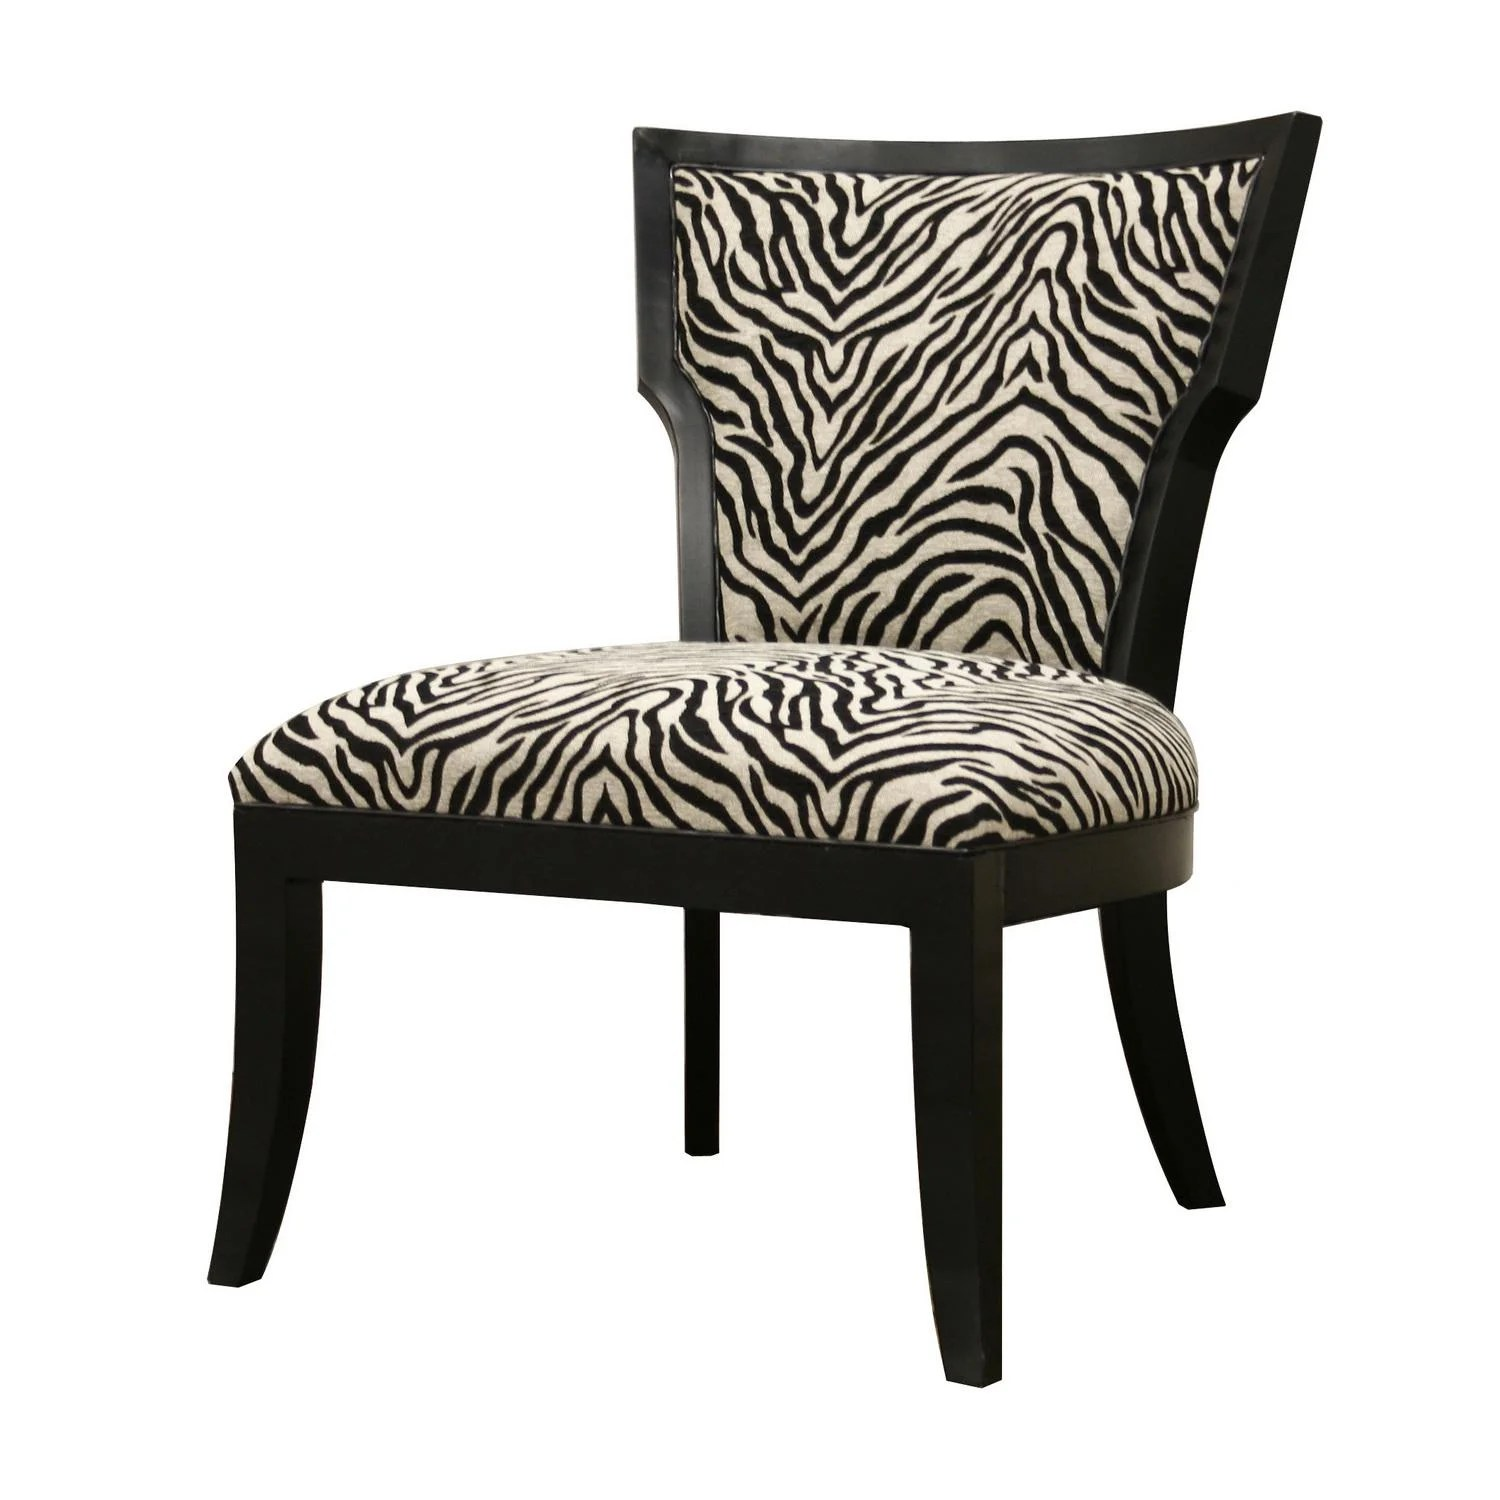 Zebra Accent Chair Courtney Modern Zebra Pattern Club Chair 13097334